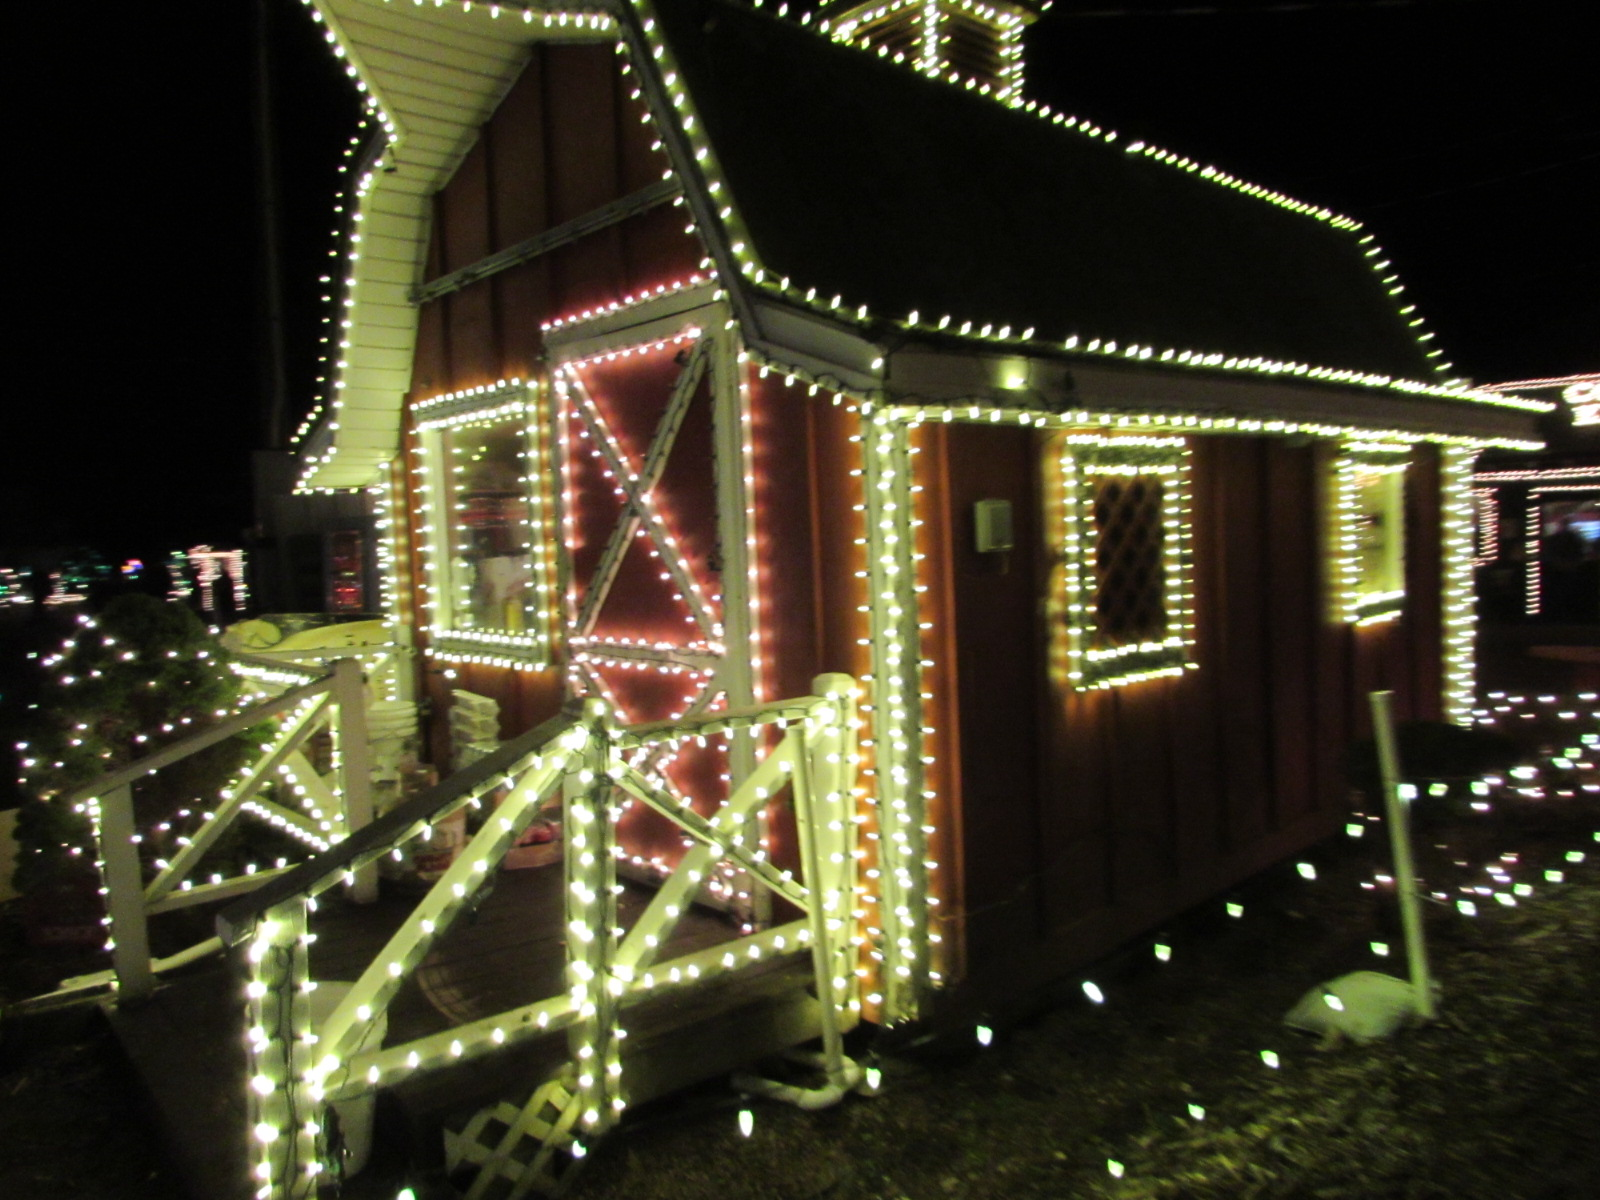 Overlys Country Christmas.Overly S Country Christmas Mt Pleasant Westmoreland